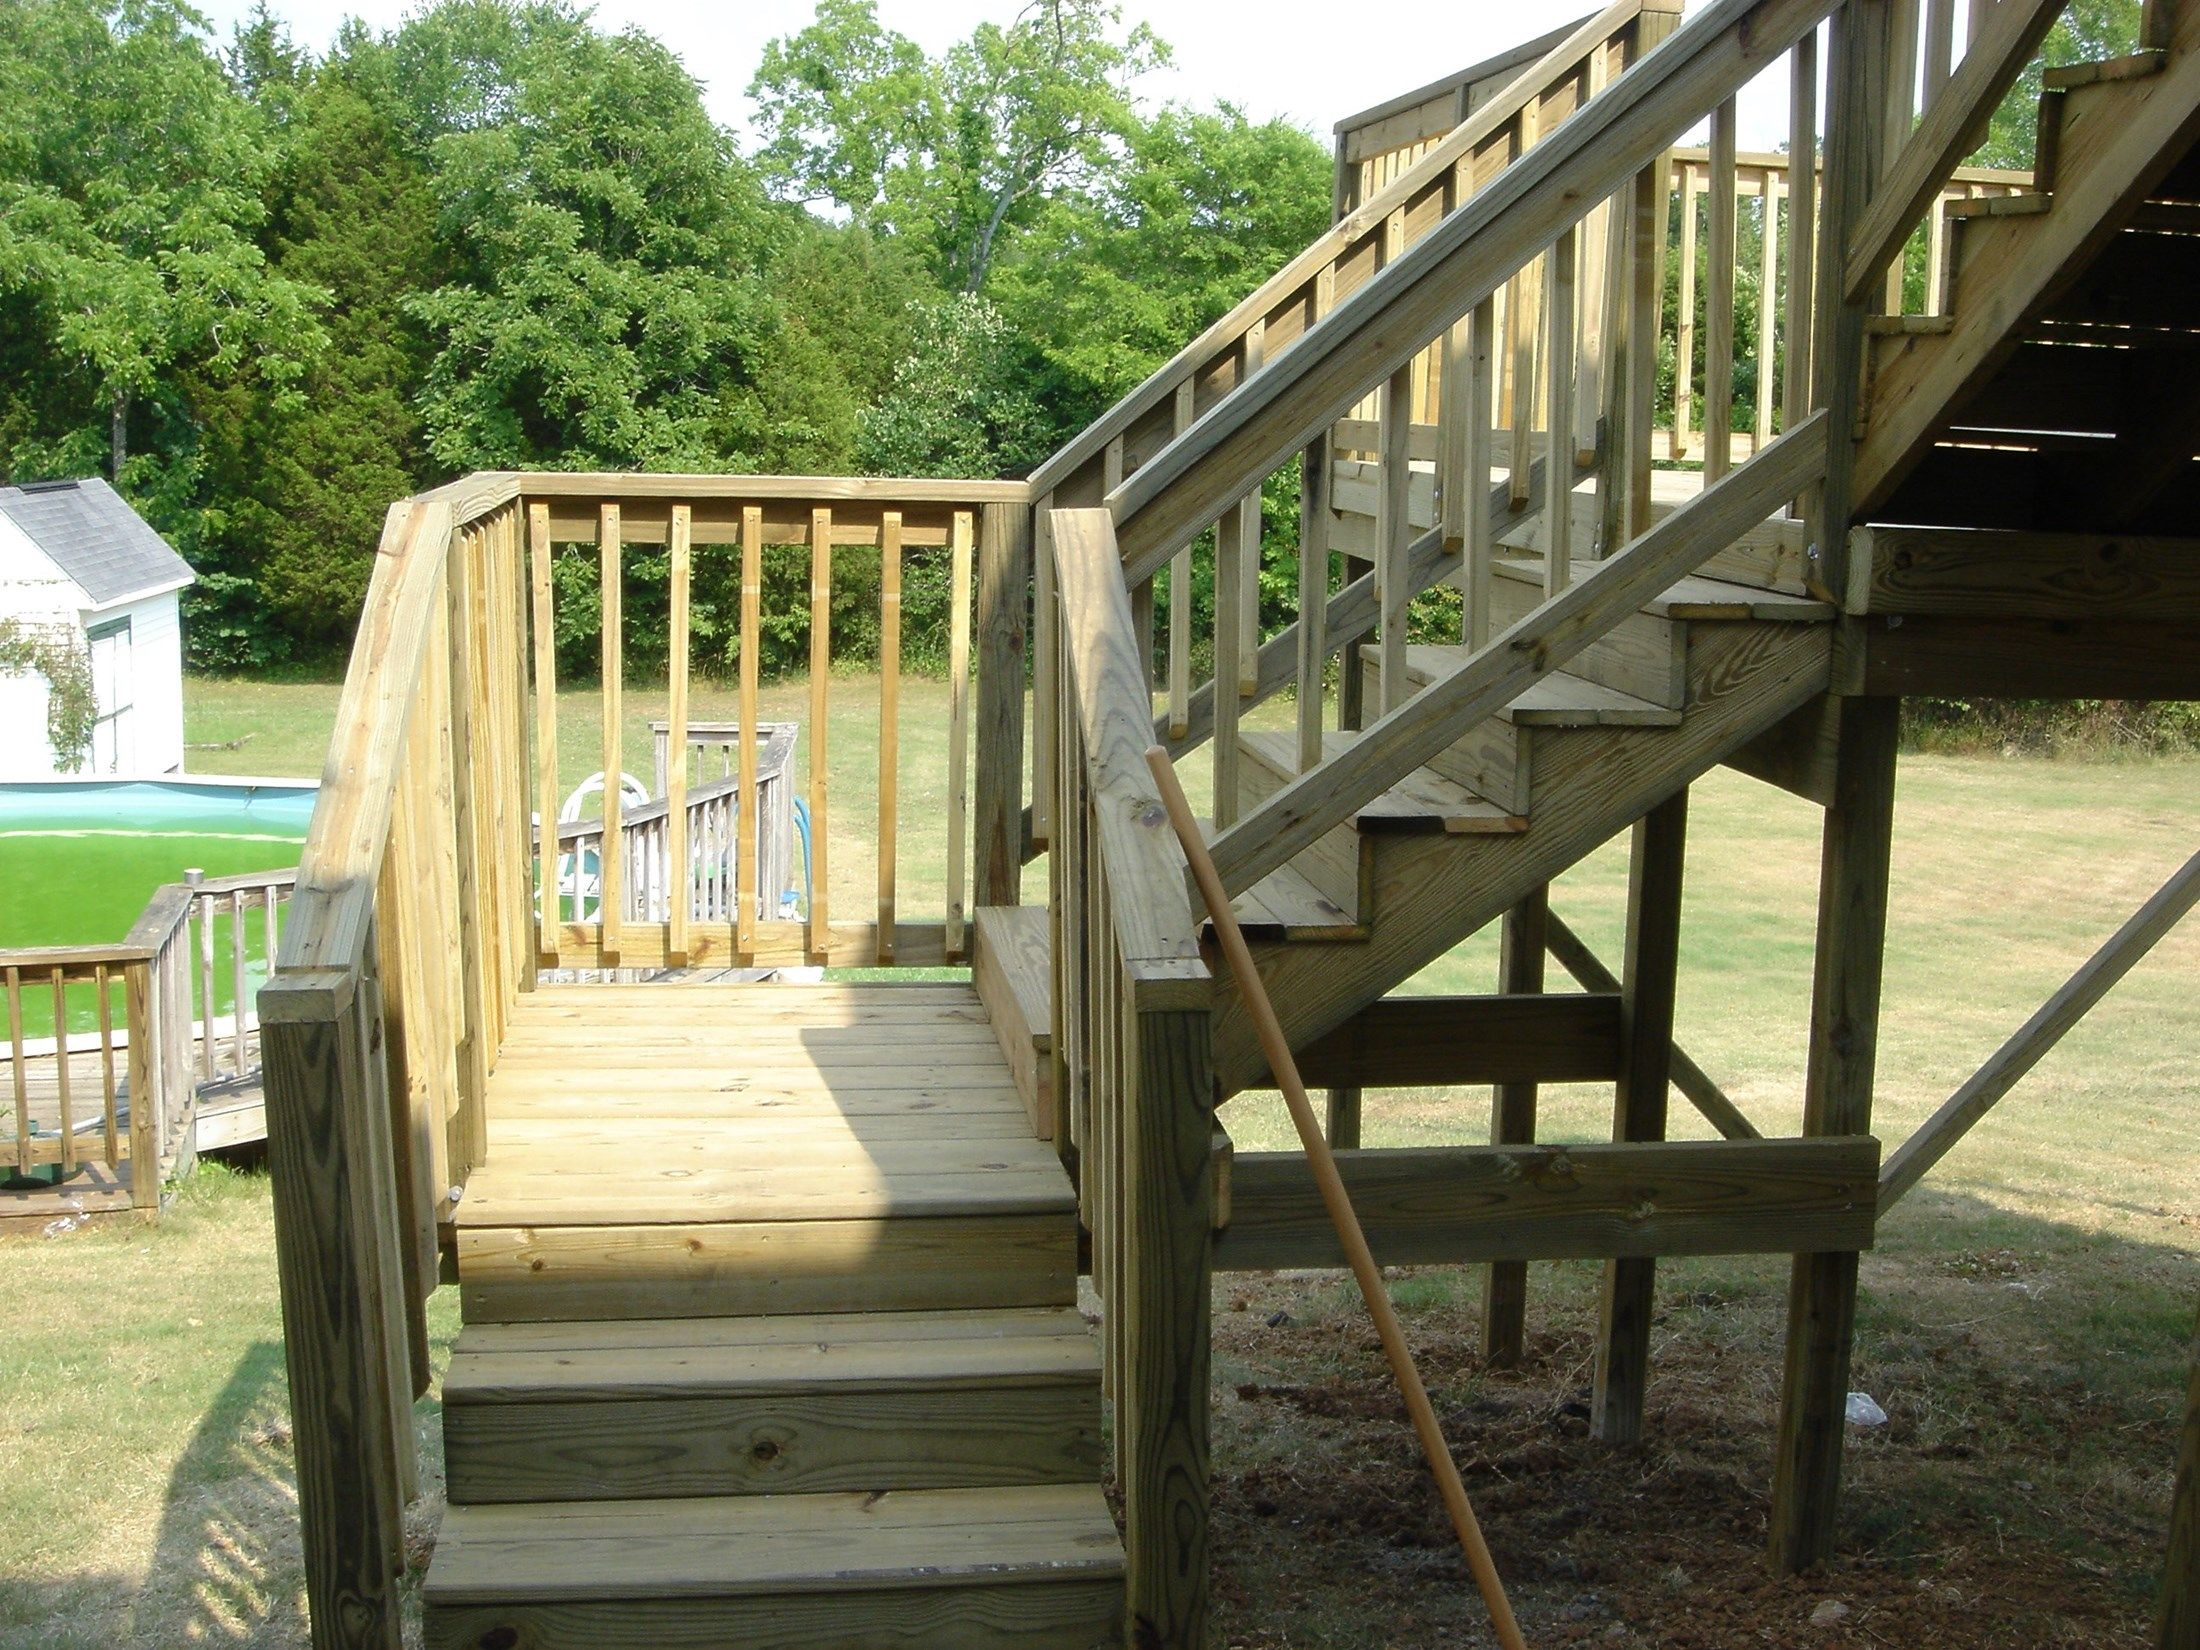 Outdoor living space - Picture 3444